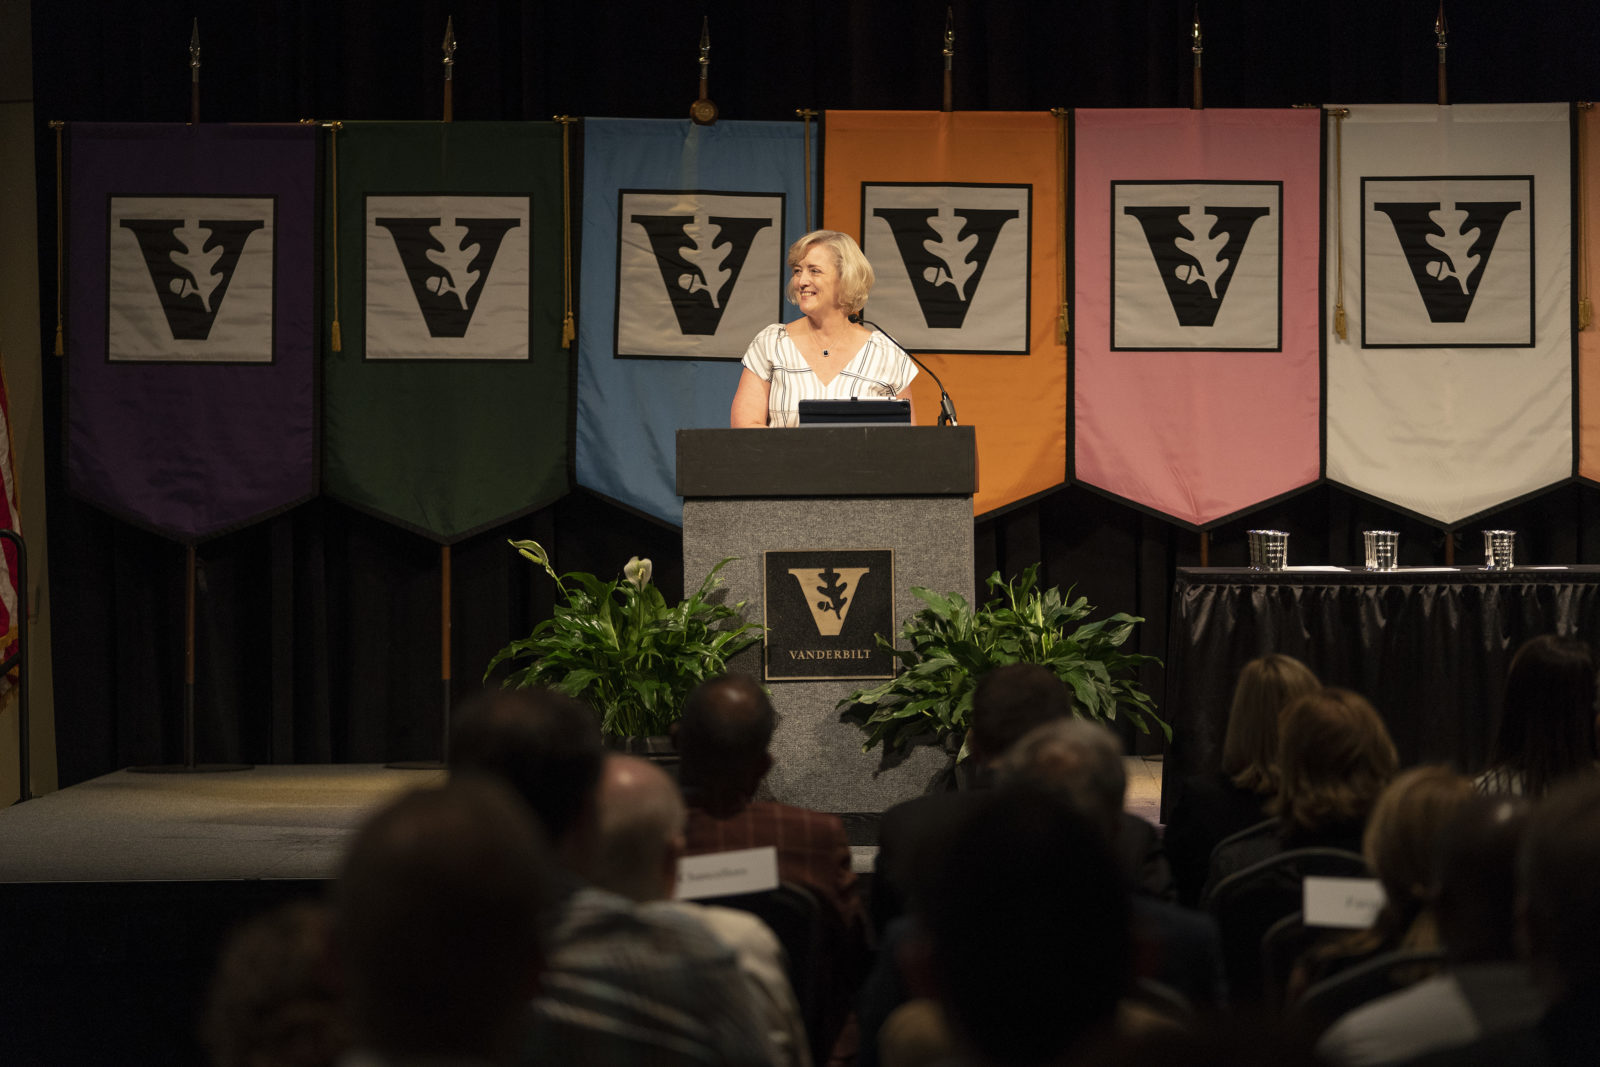 Interim Chancellor and Provost Susan R. Wente addresses faculty at the 2019 Fall Faculty Assembly on Aug. 22, 2019. (Joe Howell/Vanderbilt University)